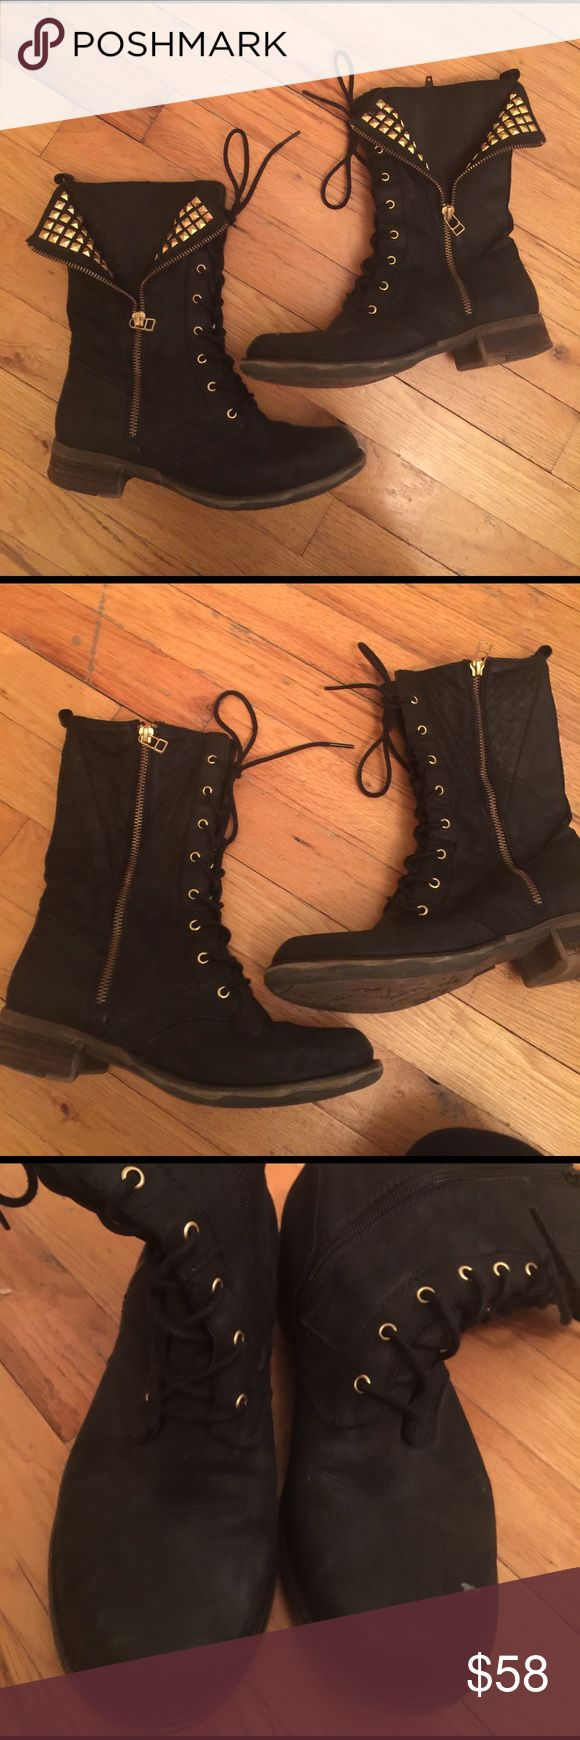 Steve Madden Studded Combat Boots Cute studded combats could be zippered if you don't want the studs for a day. Leather Steve Madden Shoes Combat & Moto Boots